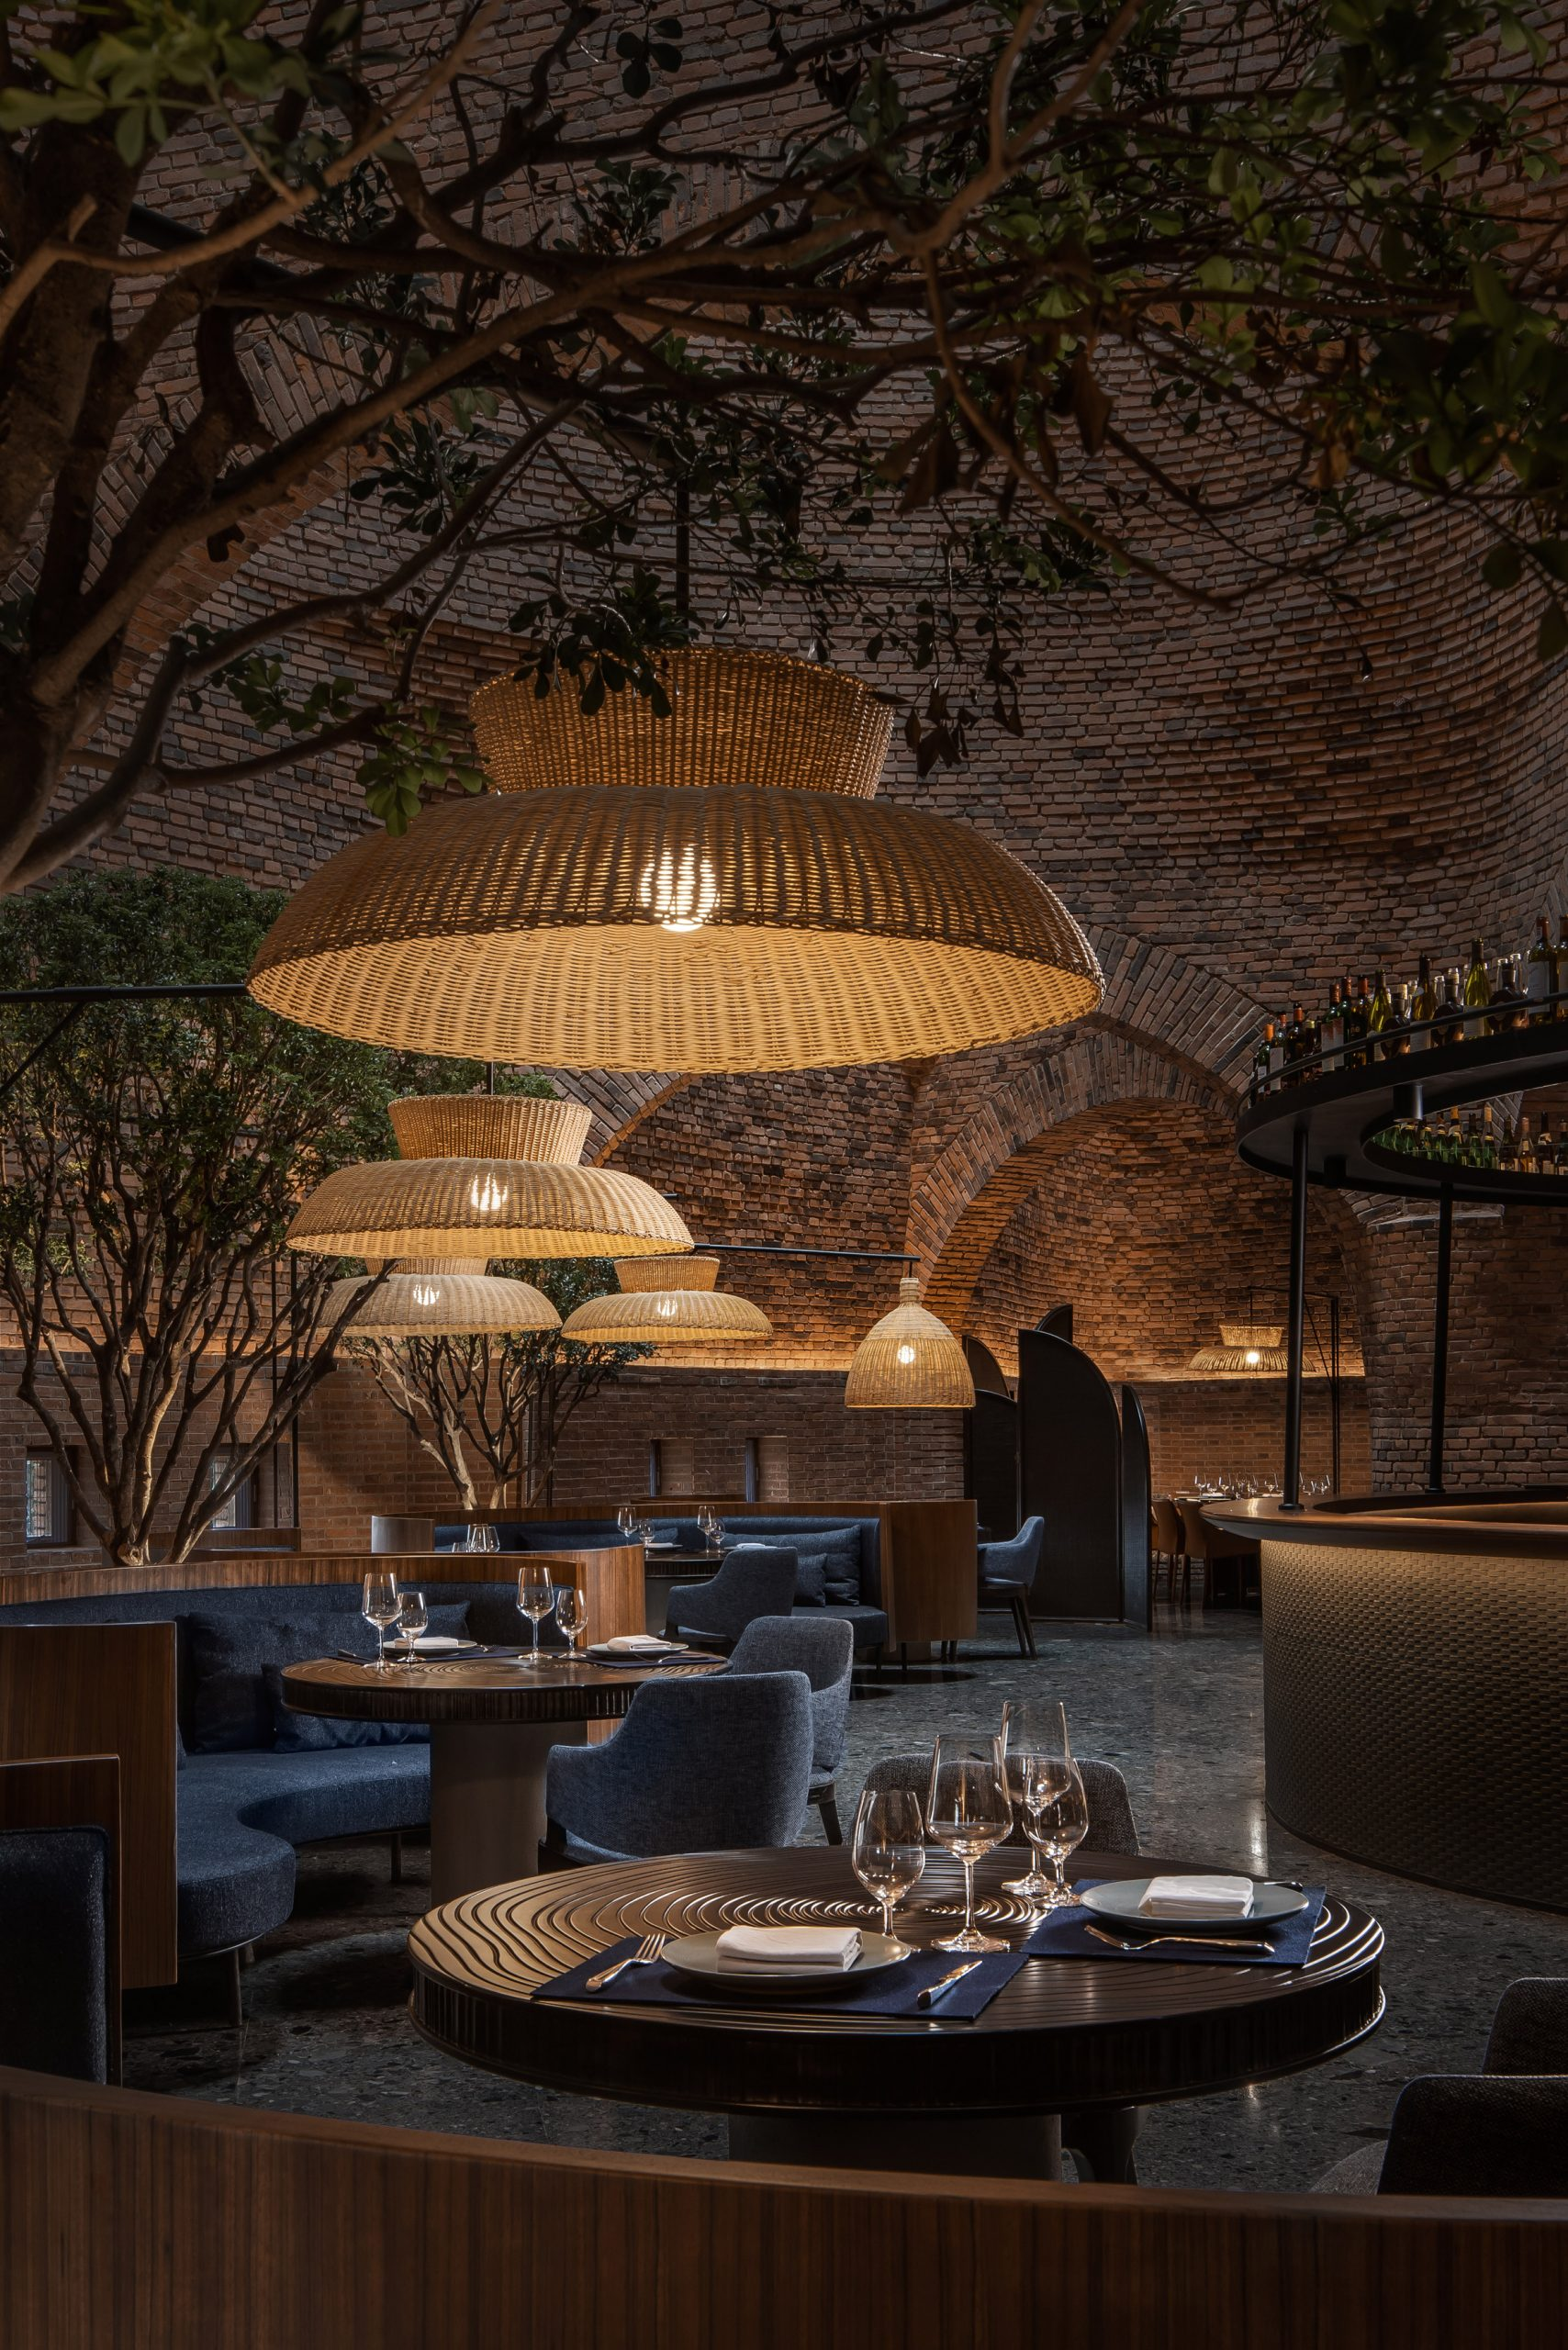 A restaurant with red-brick walls and woven lampshades